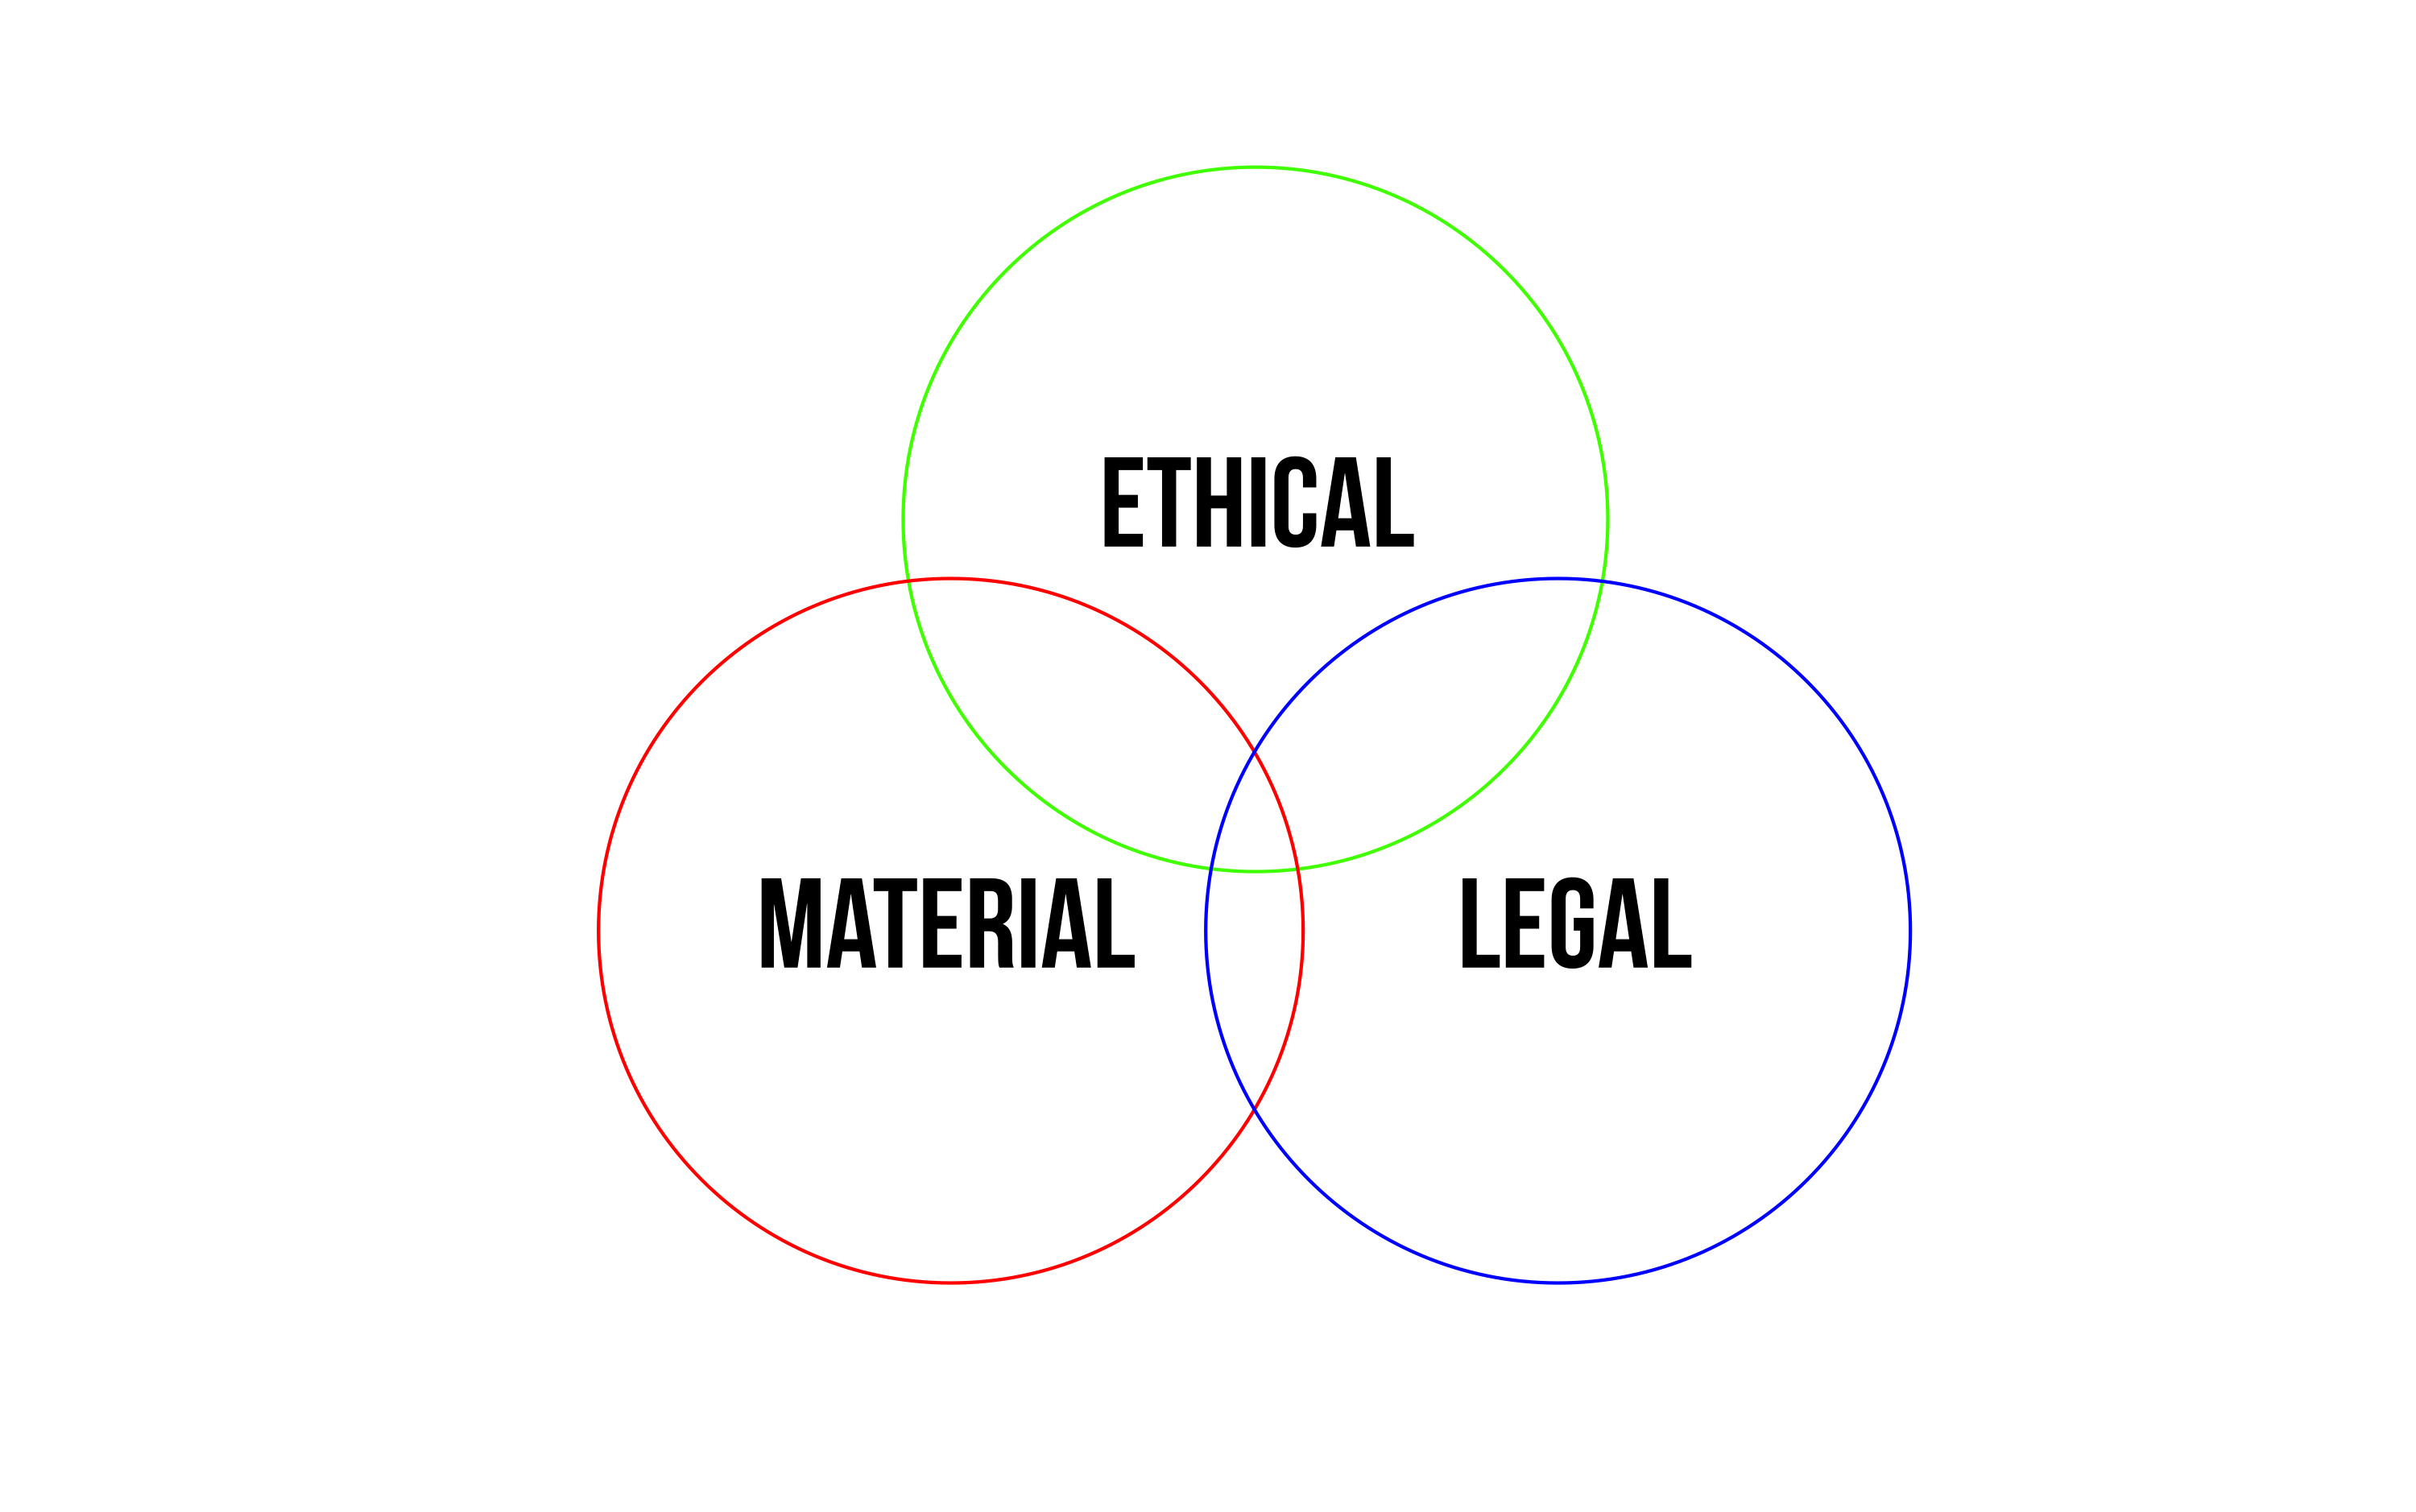 Triangular relationship between Ethics / Material / Legal Systems of Digital Design in Open Source Architecture. Image courtesy of Wendy W Fok.